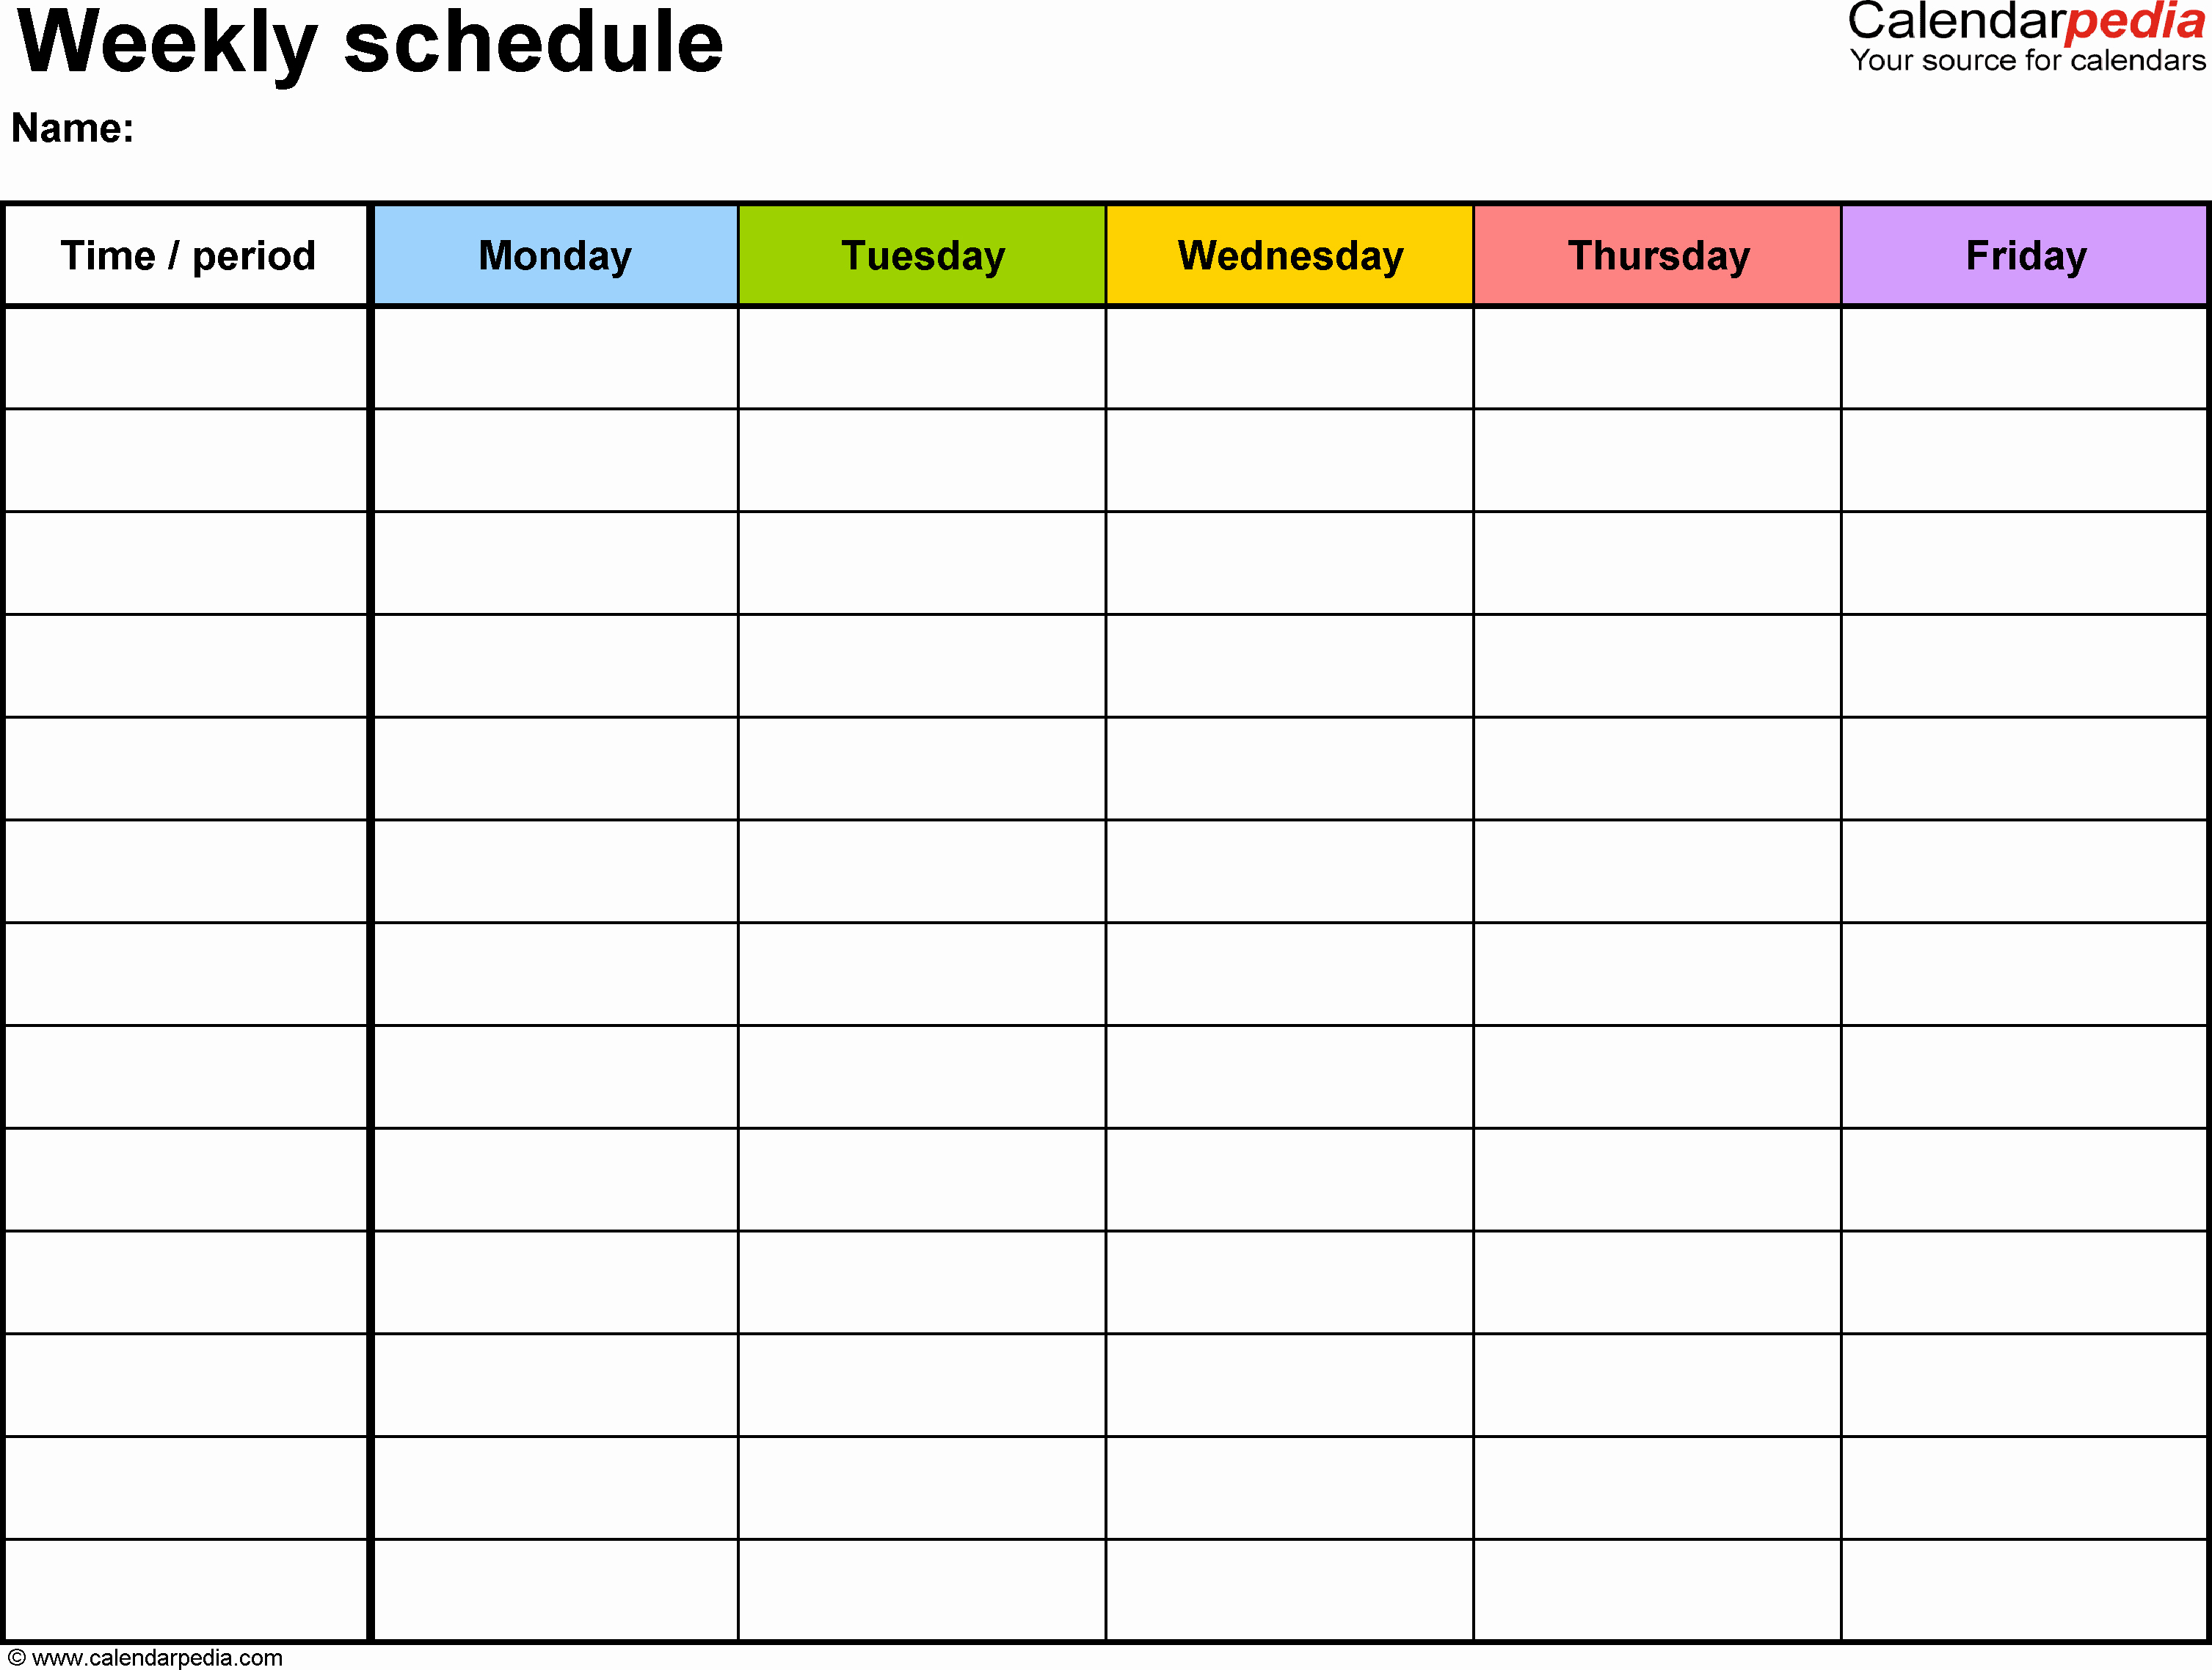 Printable Daily Schedule Template Luxury Weekly Schedule Template for Word Version 1 Landscape 1